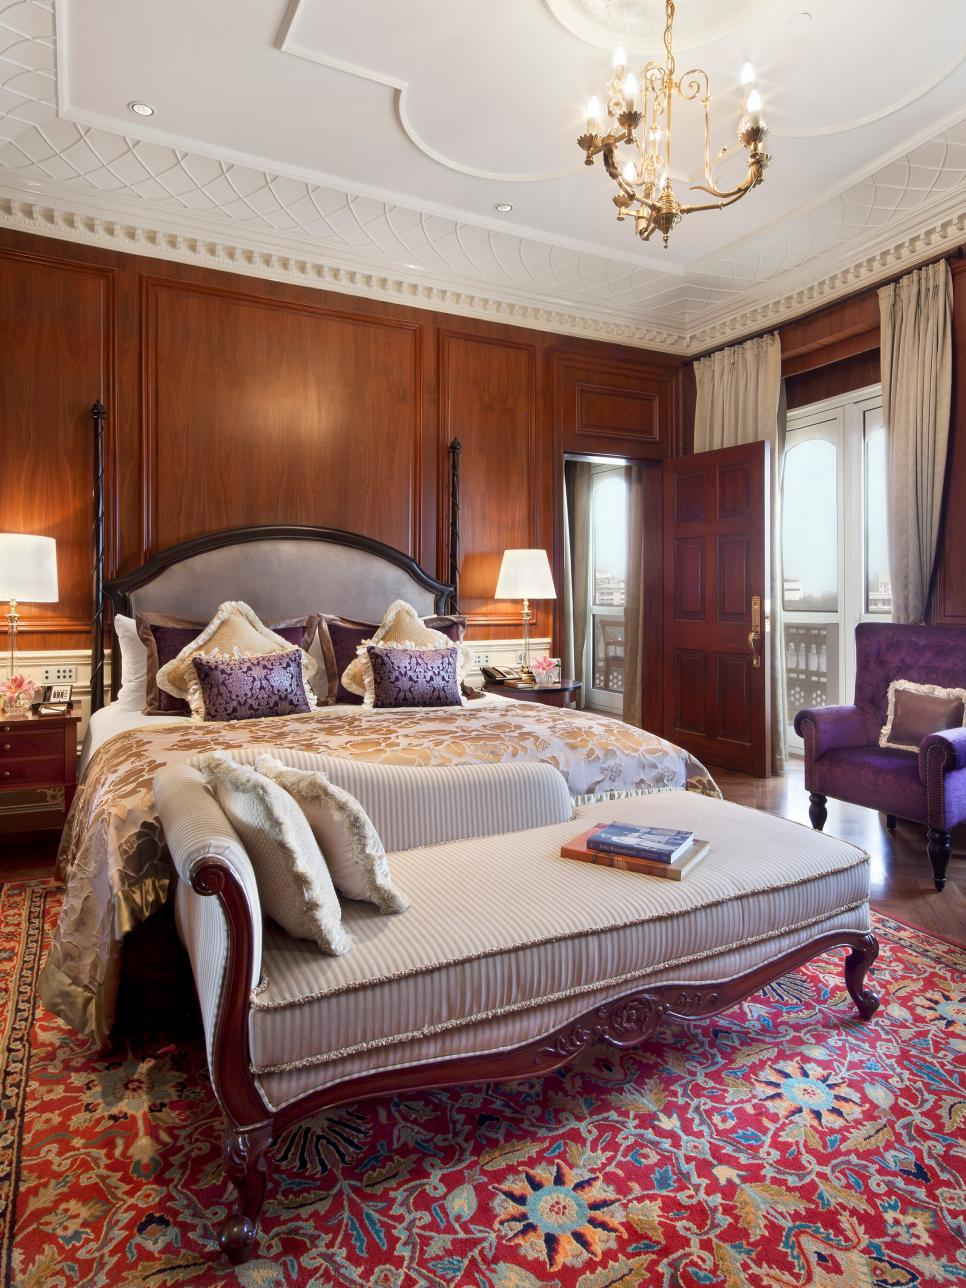 luxurious bedrooms World's Most Luxurious Bedrooms CI Taj Gateway of India Suite Bedroom wood panel window purple s